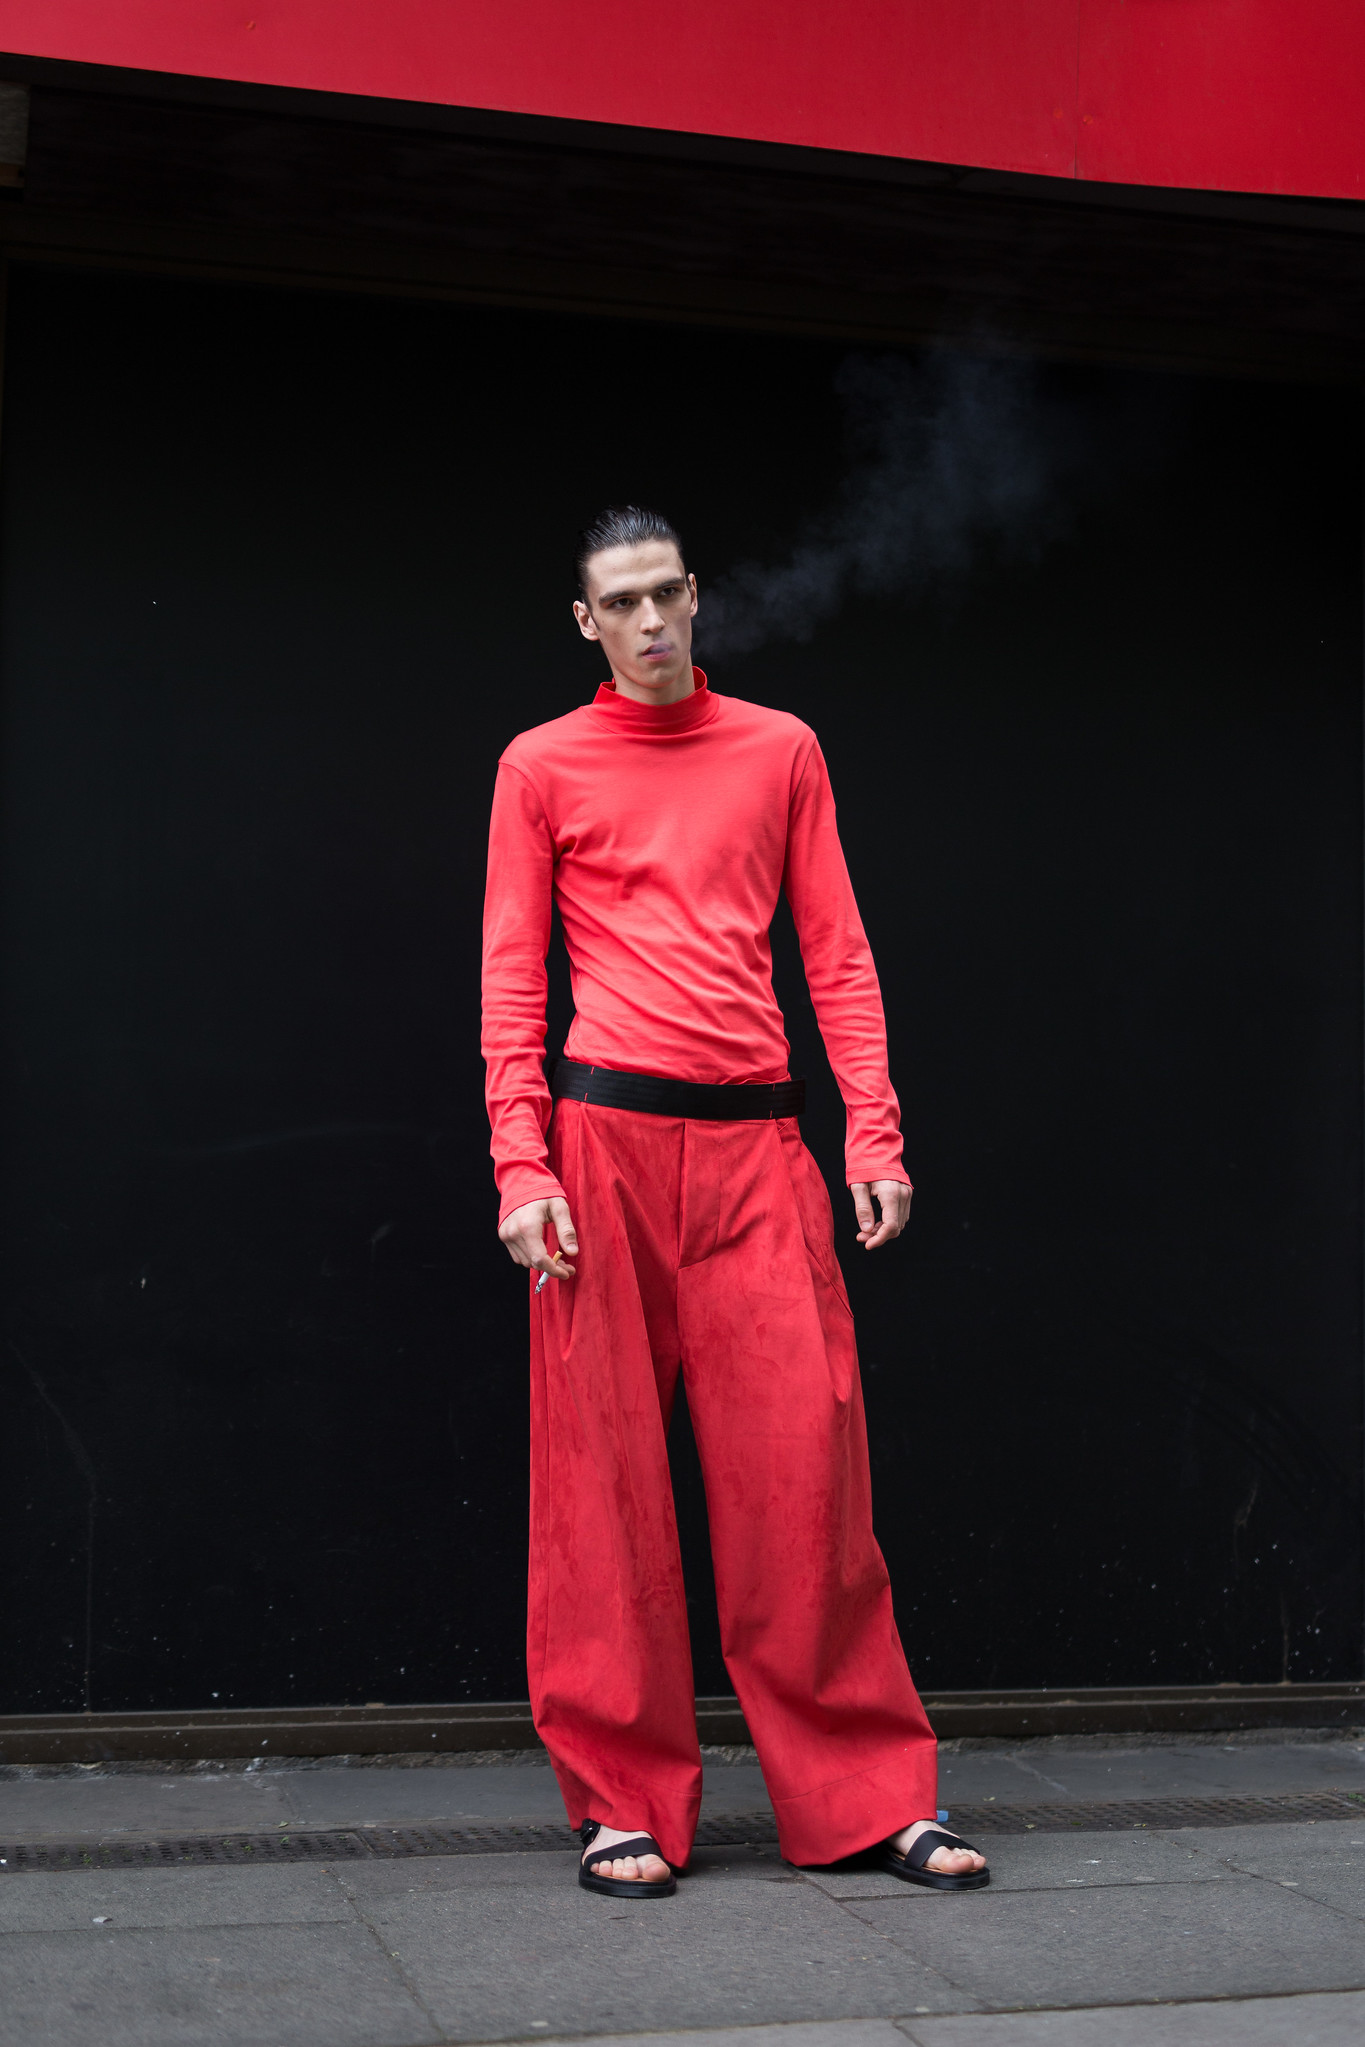 Street Style - Vladislav Blagorodnov, London Collections: Men